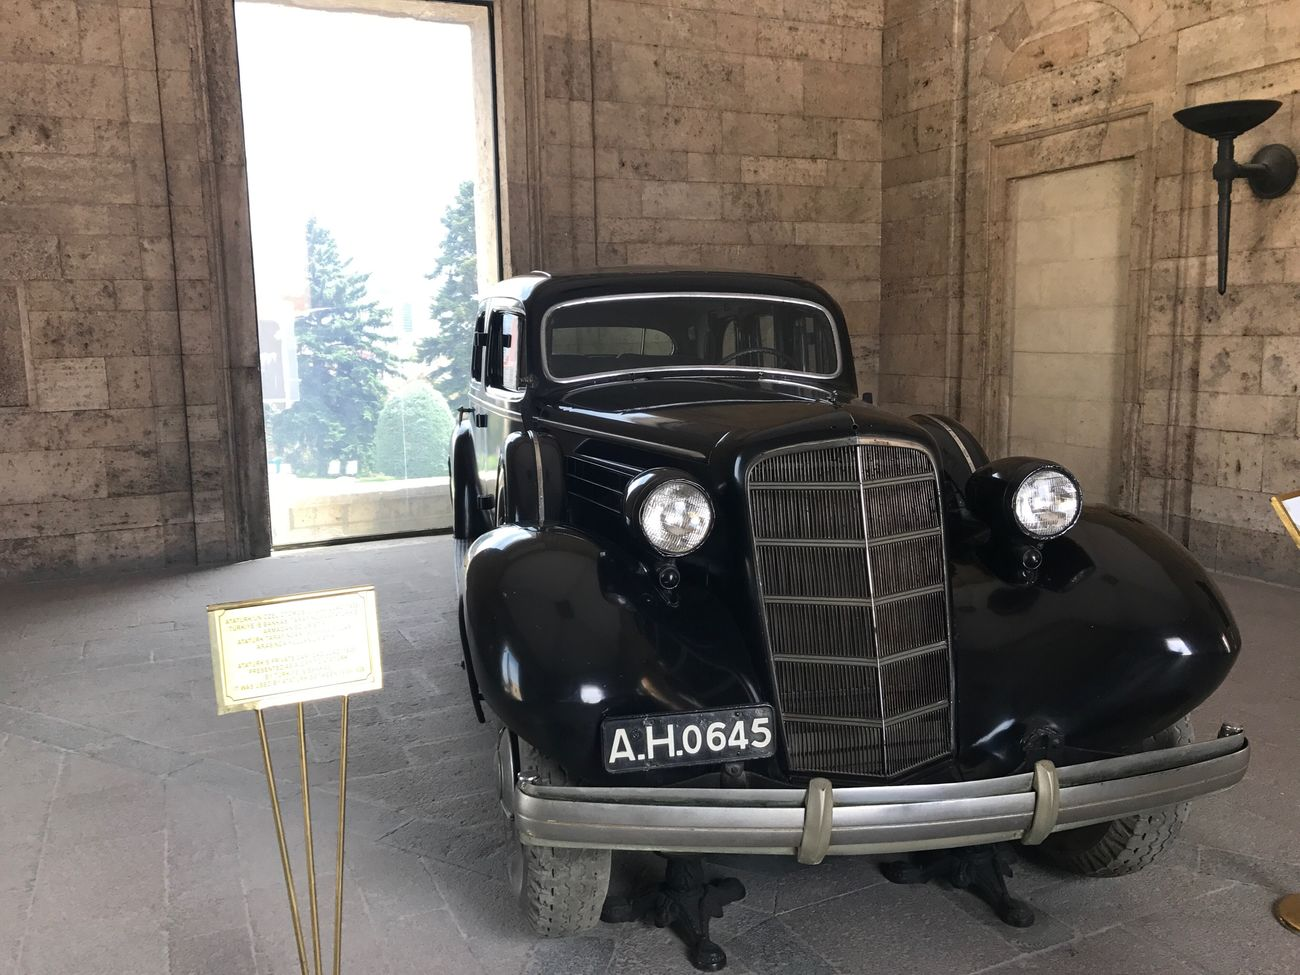 Anıtkabir Old-fashioned Transportation Retro Styled Land Vehicle Mode Of Transport Car Vintage Car Headlight Antique Collector's Car Day No People Architecture Outdoors